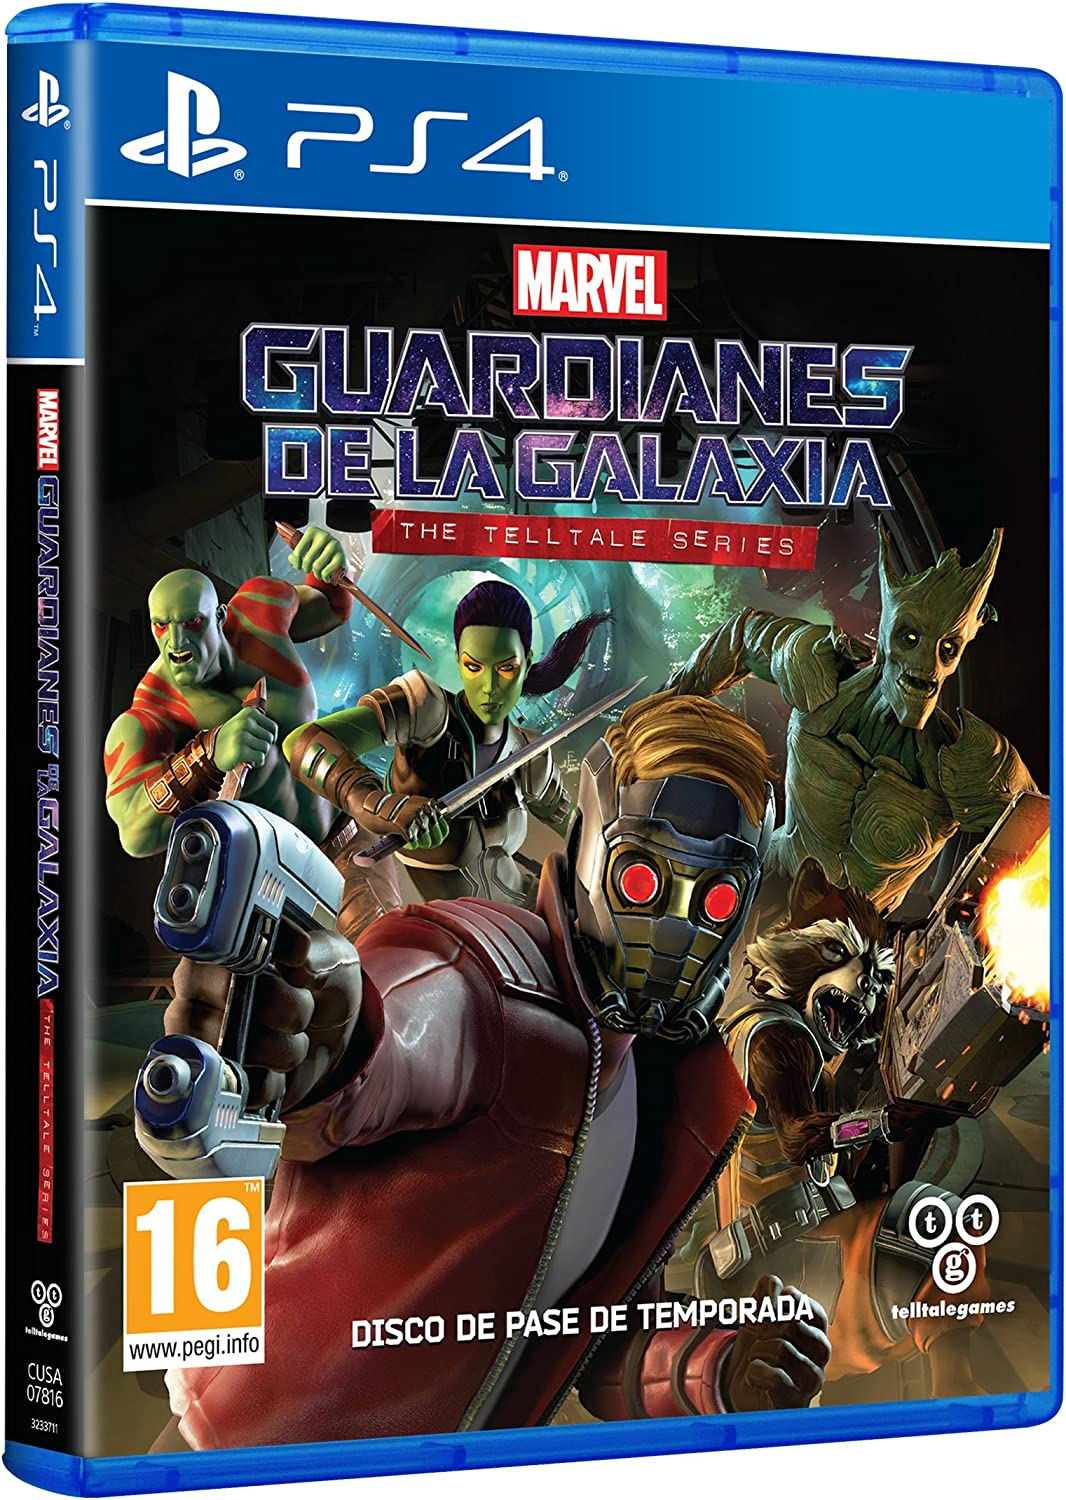 Guardianes De La Galaxia: Amazon.es: Videojuegos